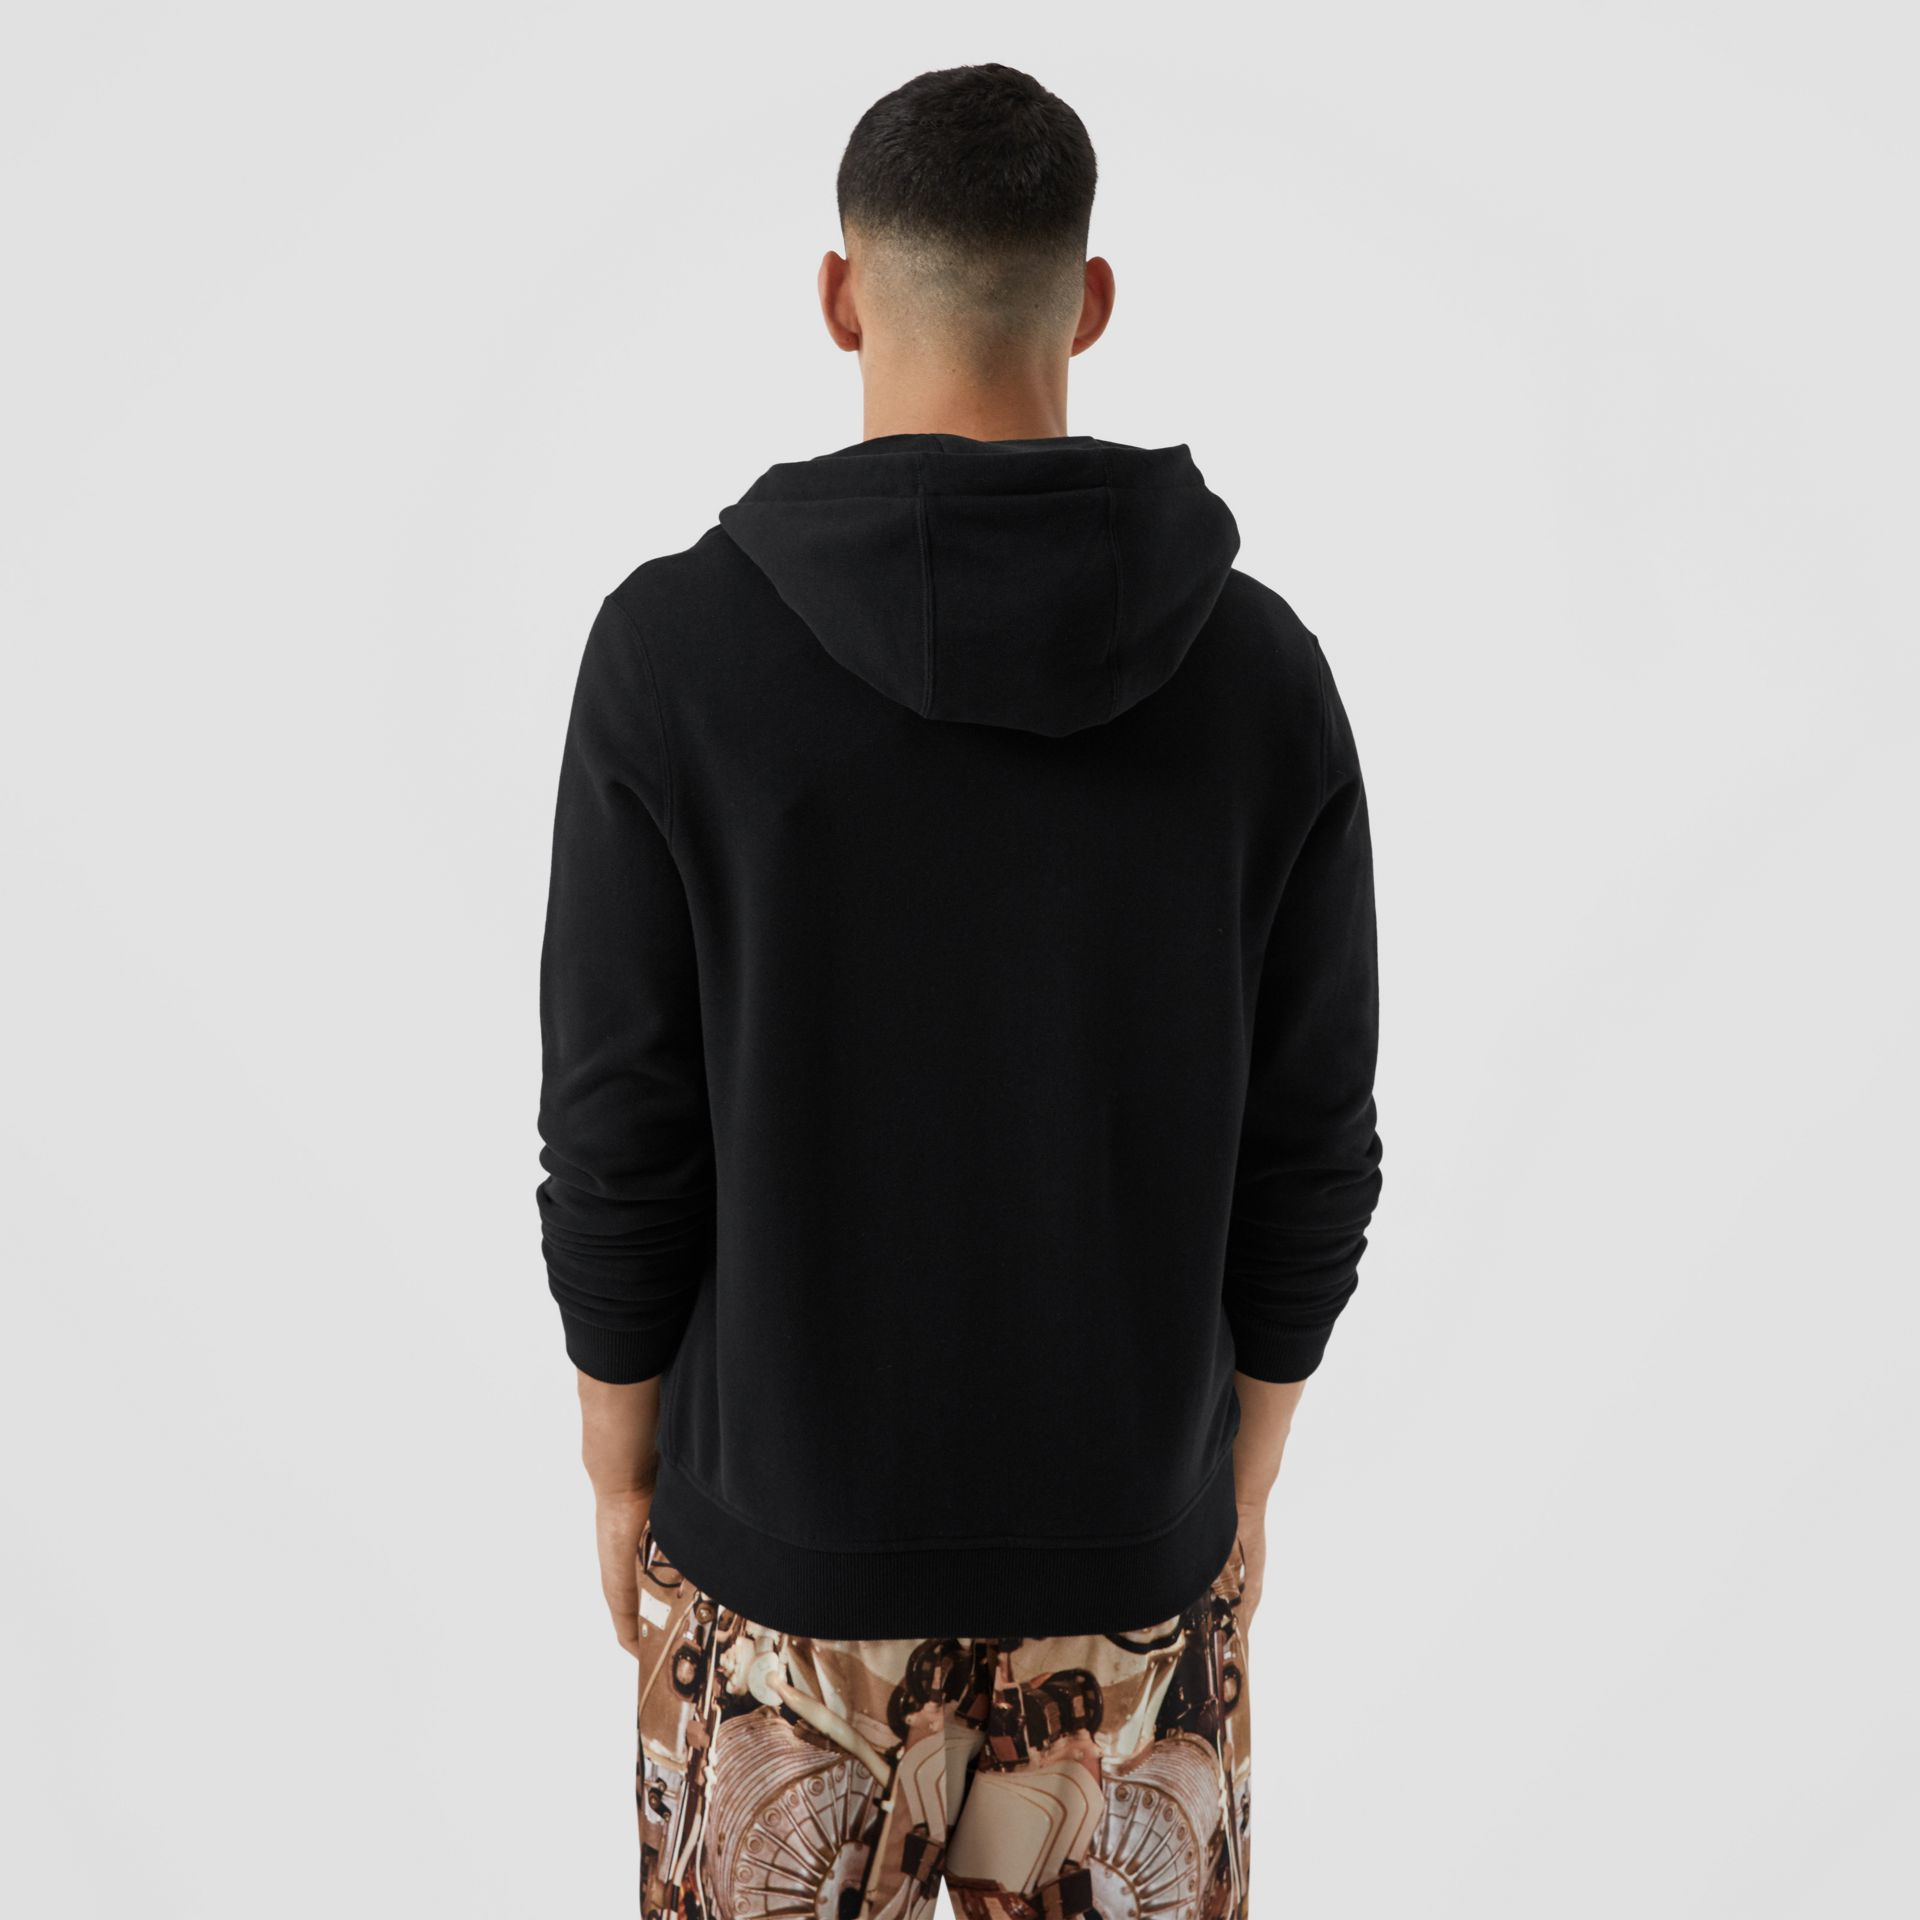 Contrast Logo Graphic Cotton Hooded Top in Black - Men | Burberry United Kingdom - gallery image 2